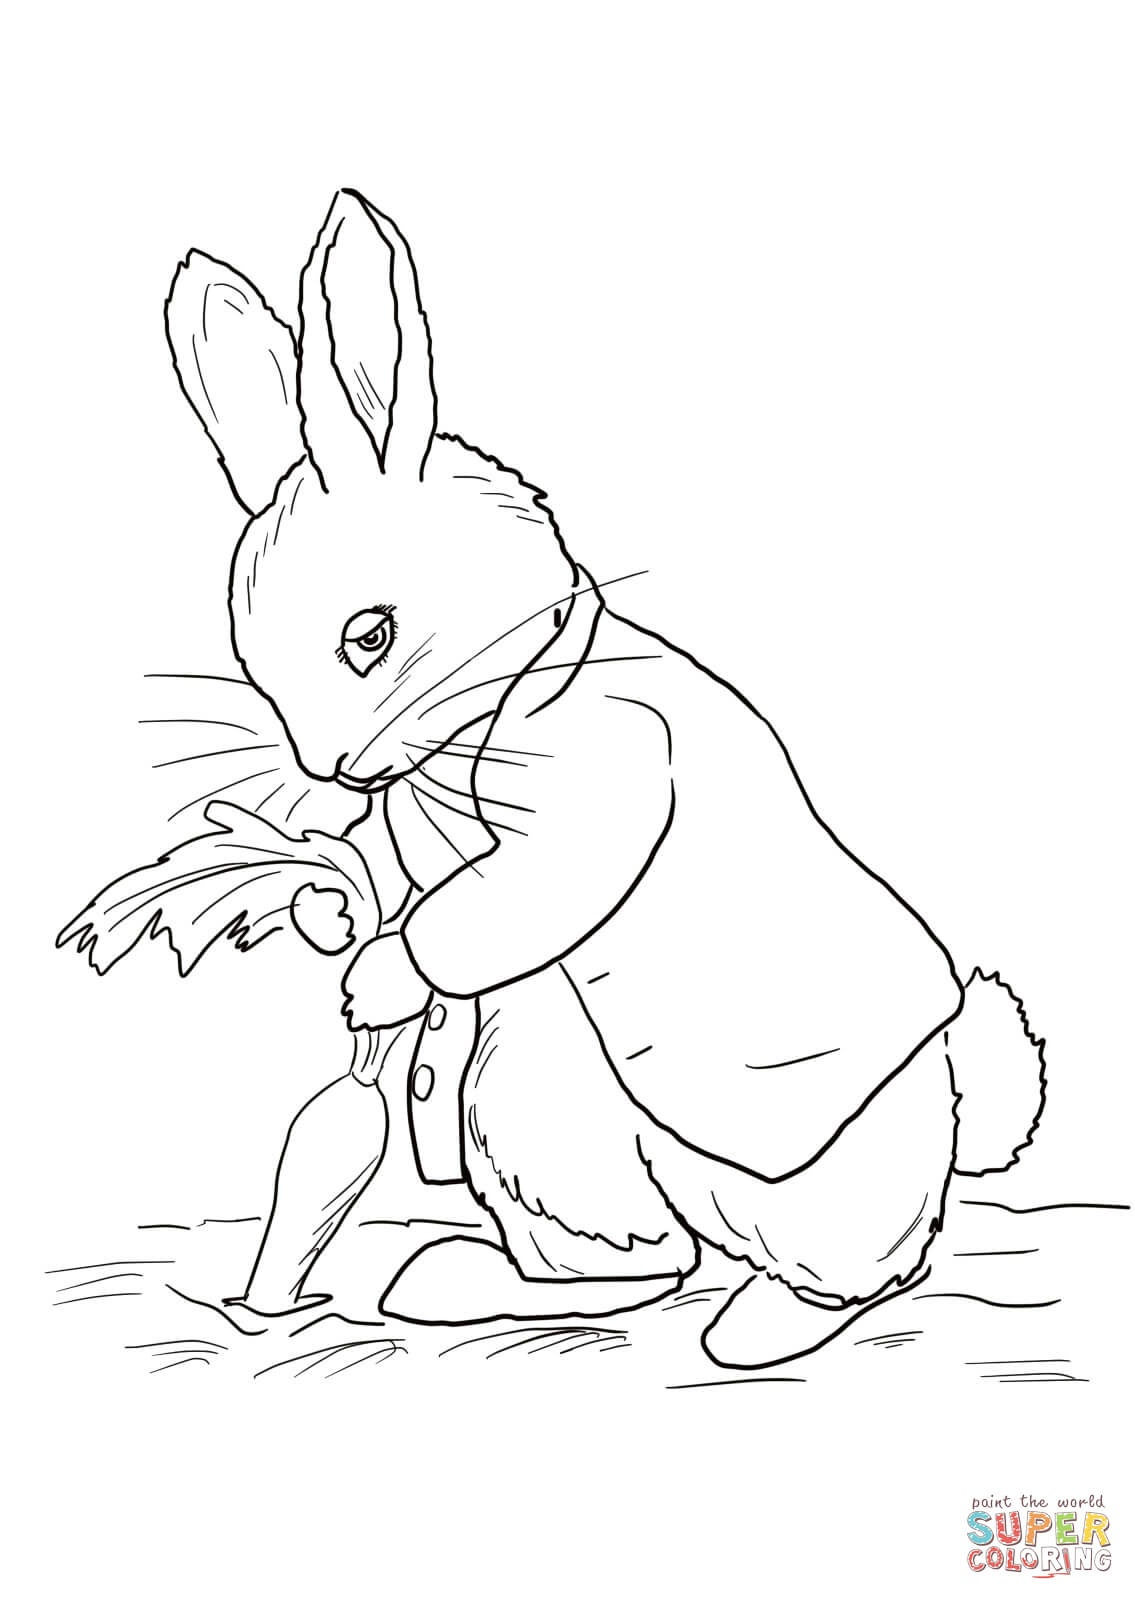 Coloring Ideas : Peter Rabbit Stealing Carrots Coloring Page Free - Free Printable Peter Rabbit Coloring Pages